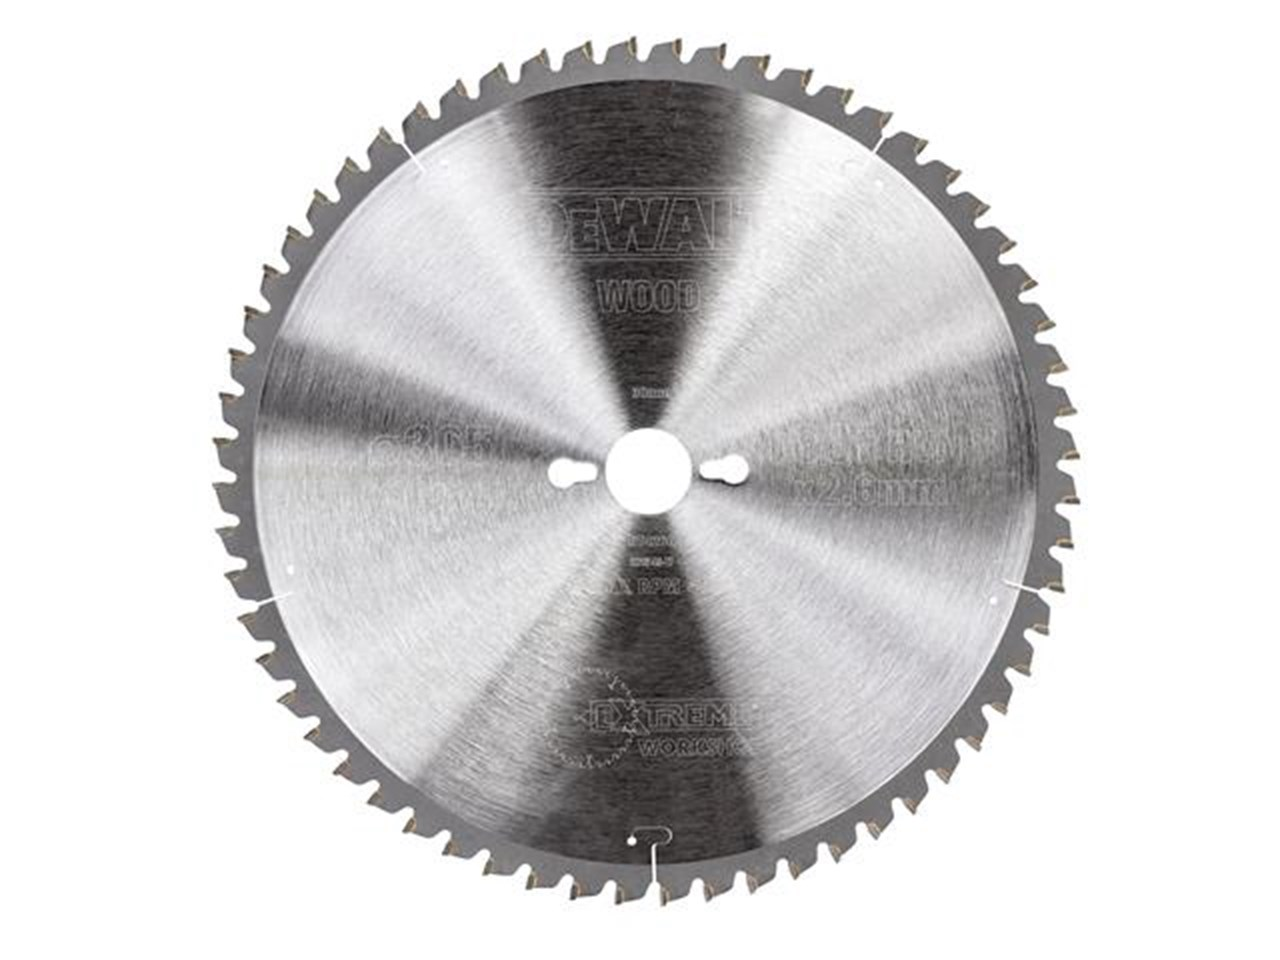 Dewalt dt4260 qz 305mm x 30mm x 60t extreme mitre saw blade greentooth Image collections